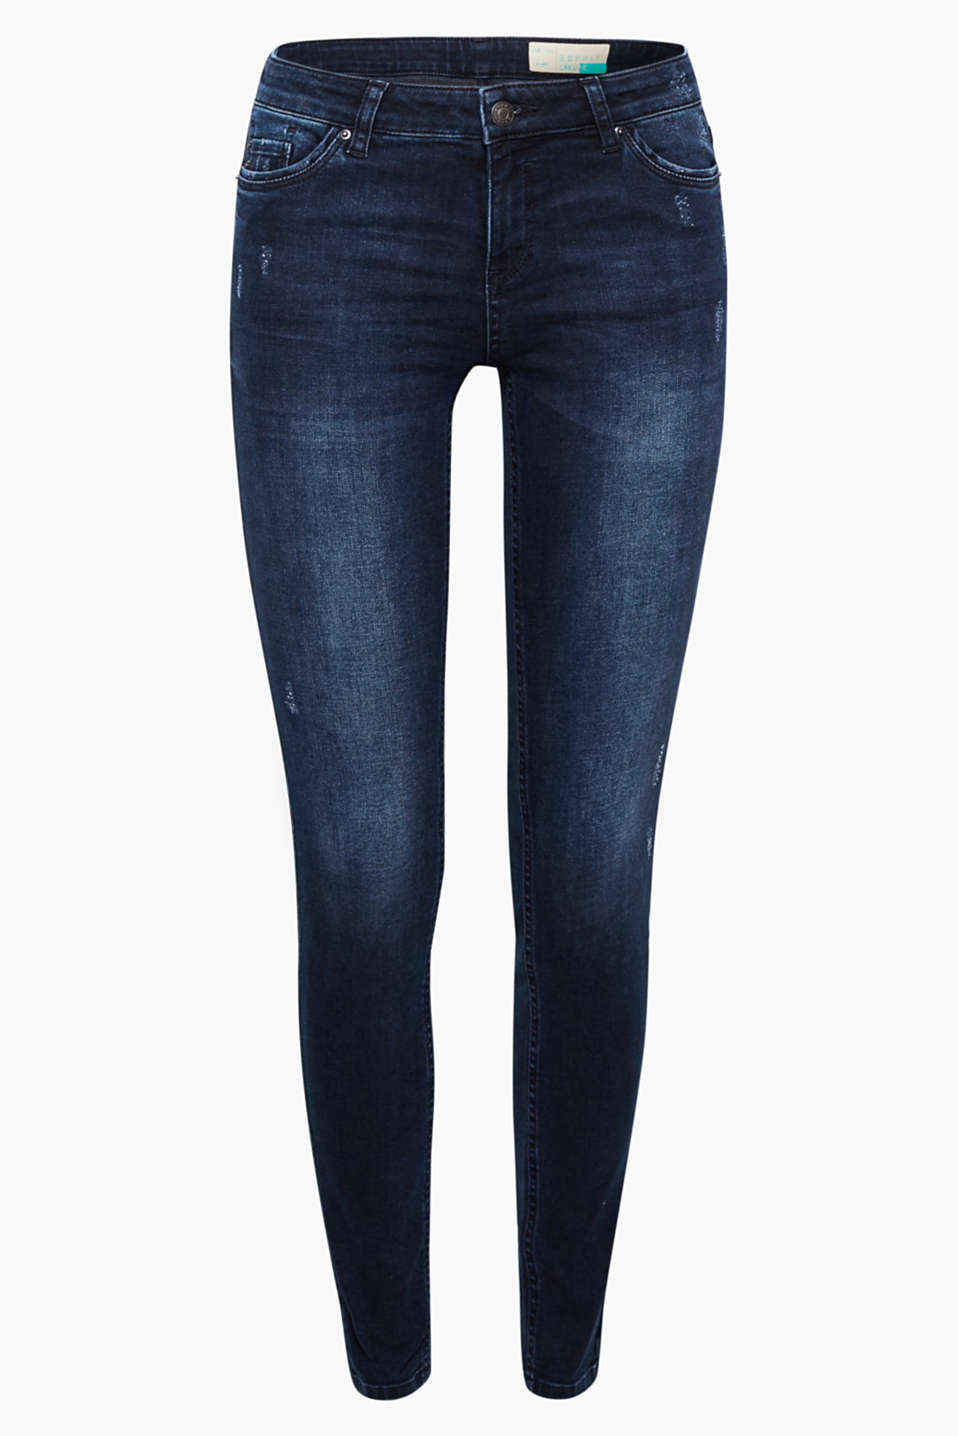 Feel good - in these skin-tight, trendily washed stretch jeans made of organic cotton with a cool vintage finish!